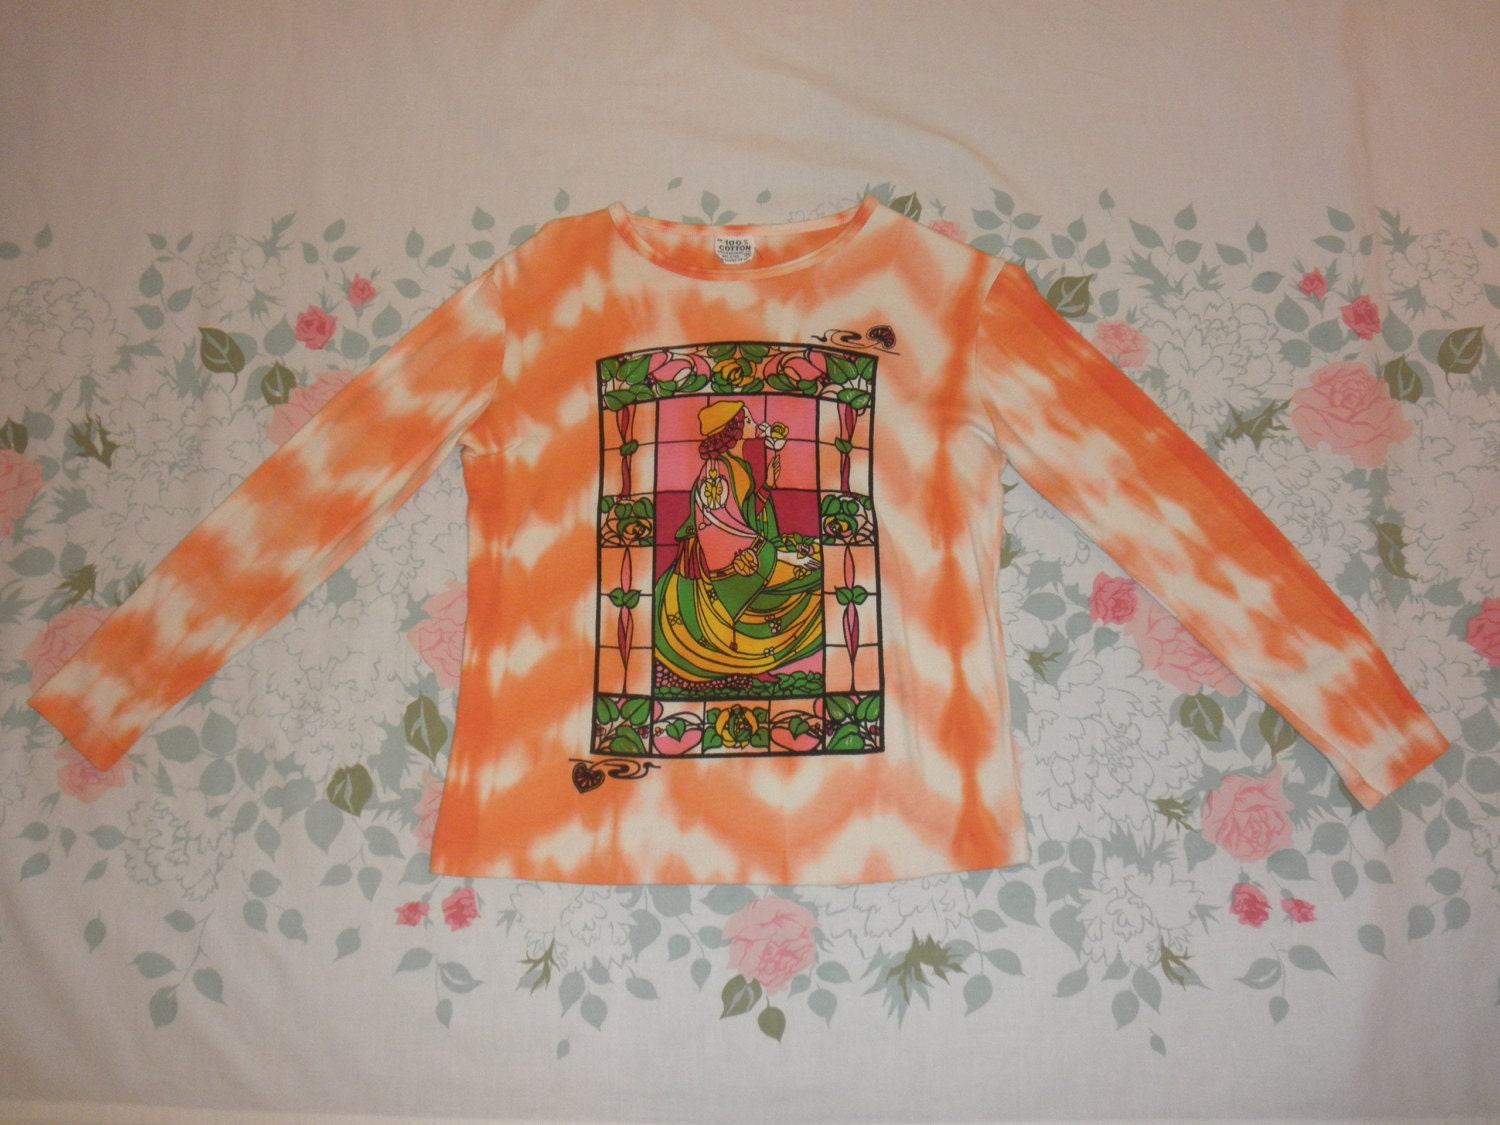 70s hippie tie dye shirt 1970s art nouveau stained glass